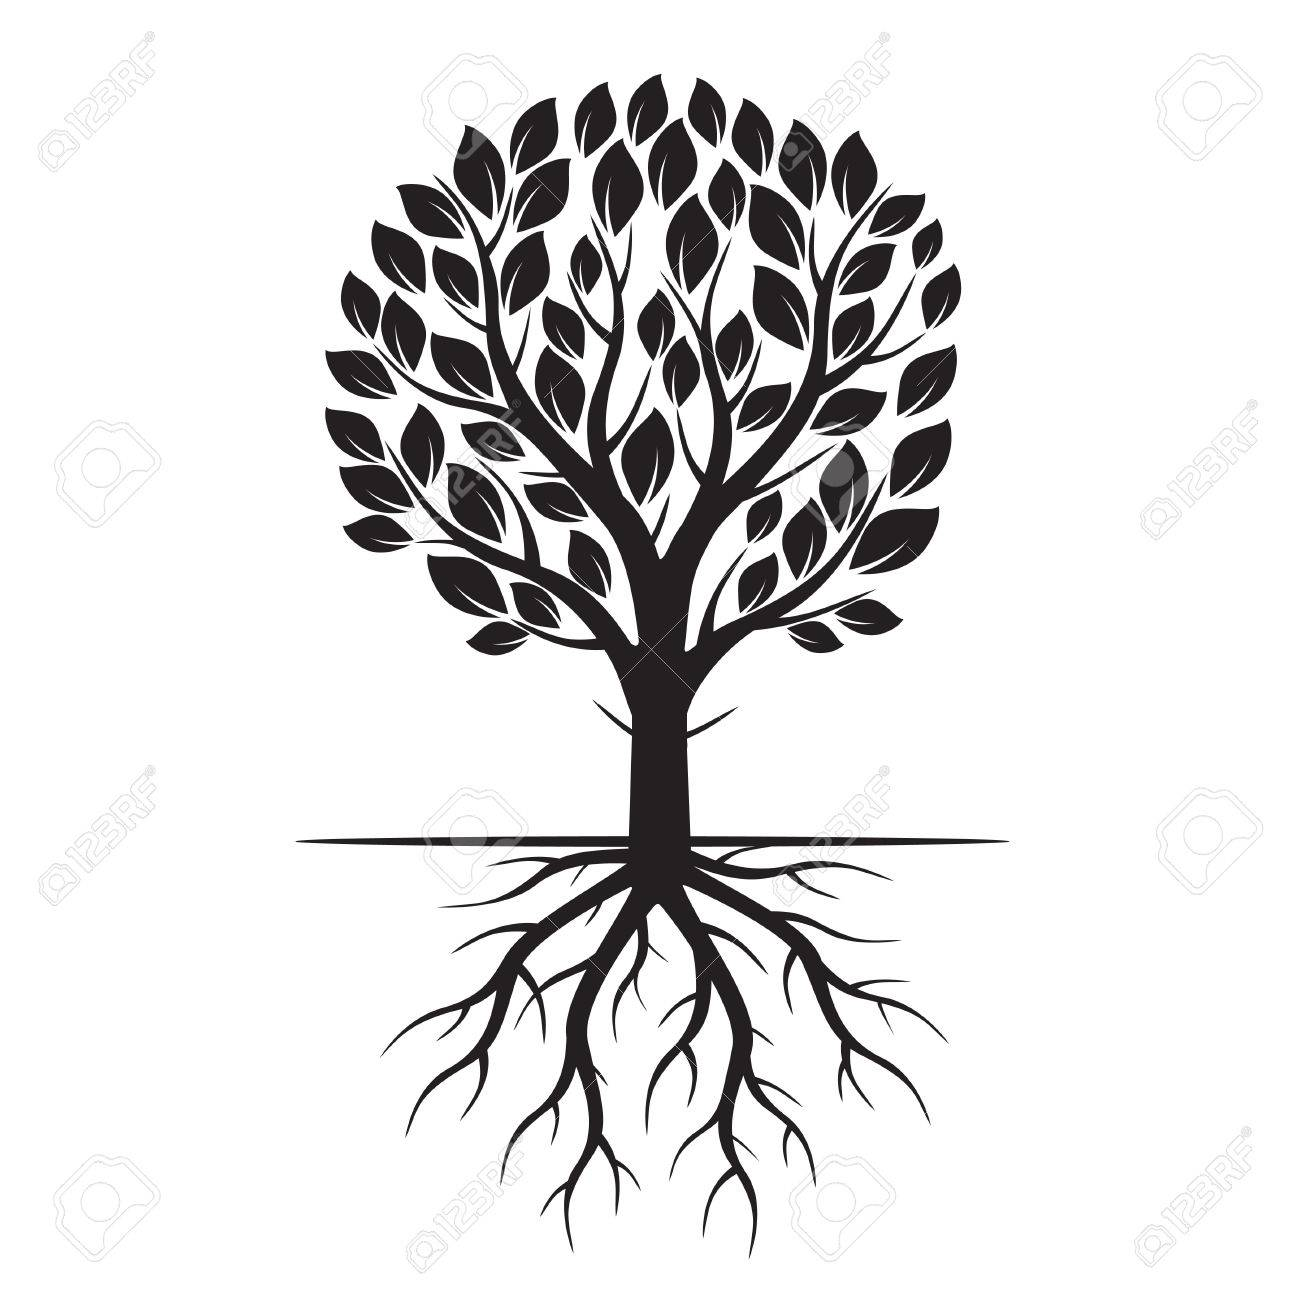 black eco tree and roots vector illustration royalty free cliparts rh 123rf com tree with roots silhouette vector free tree with deep roots vector